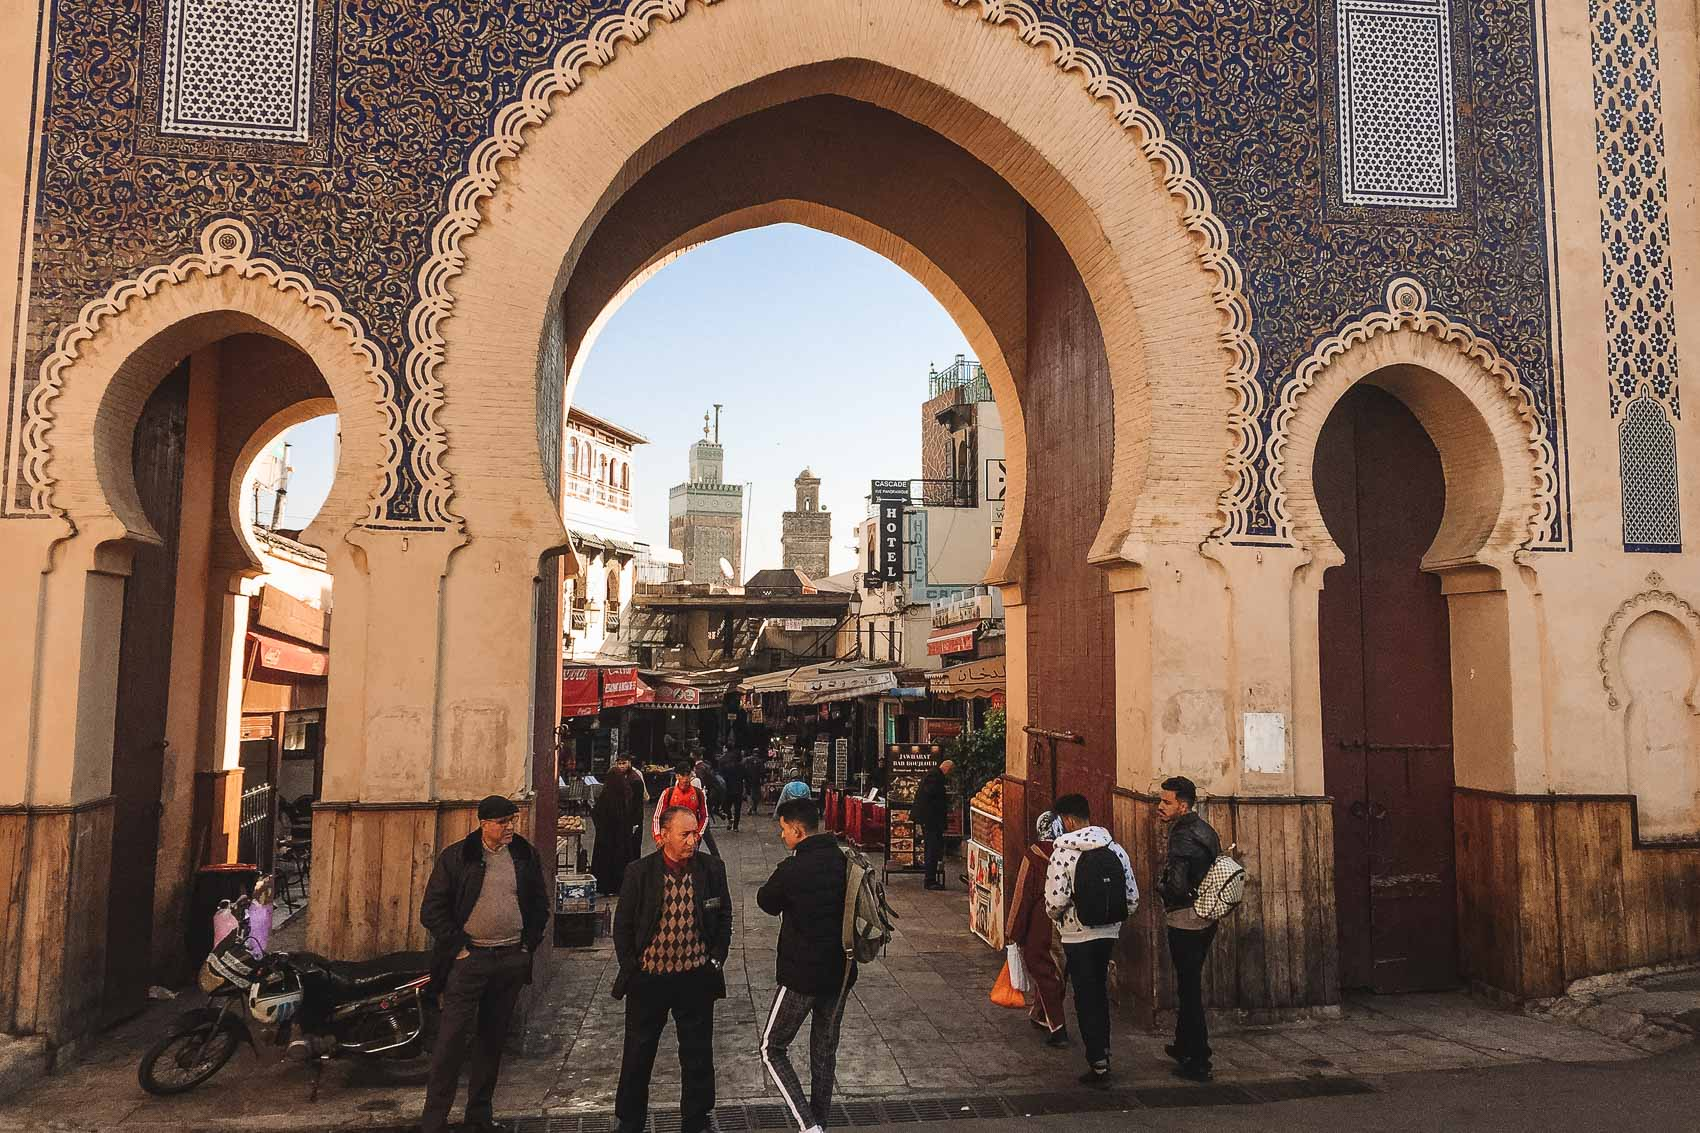 Gates into the medina in Fes Morocco - bucket list travel